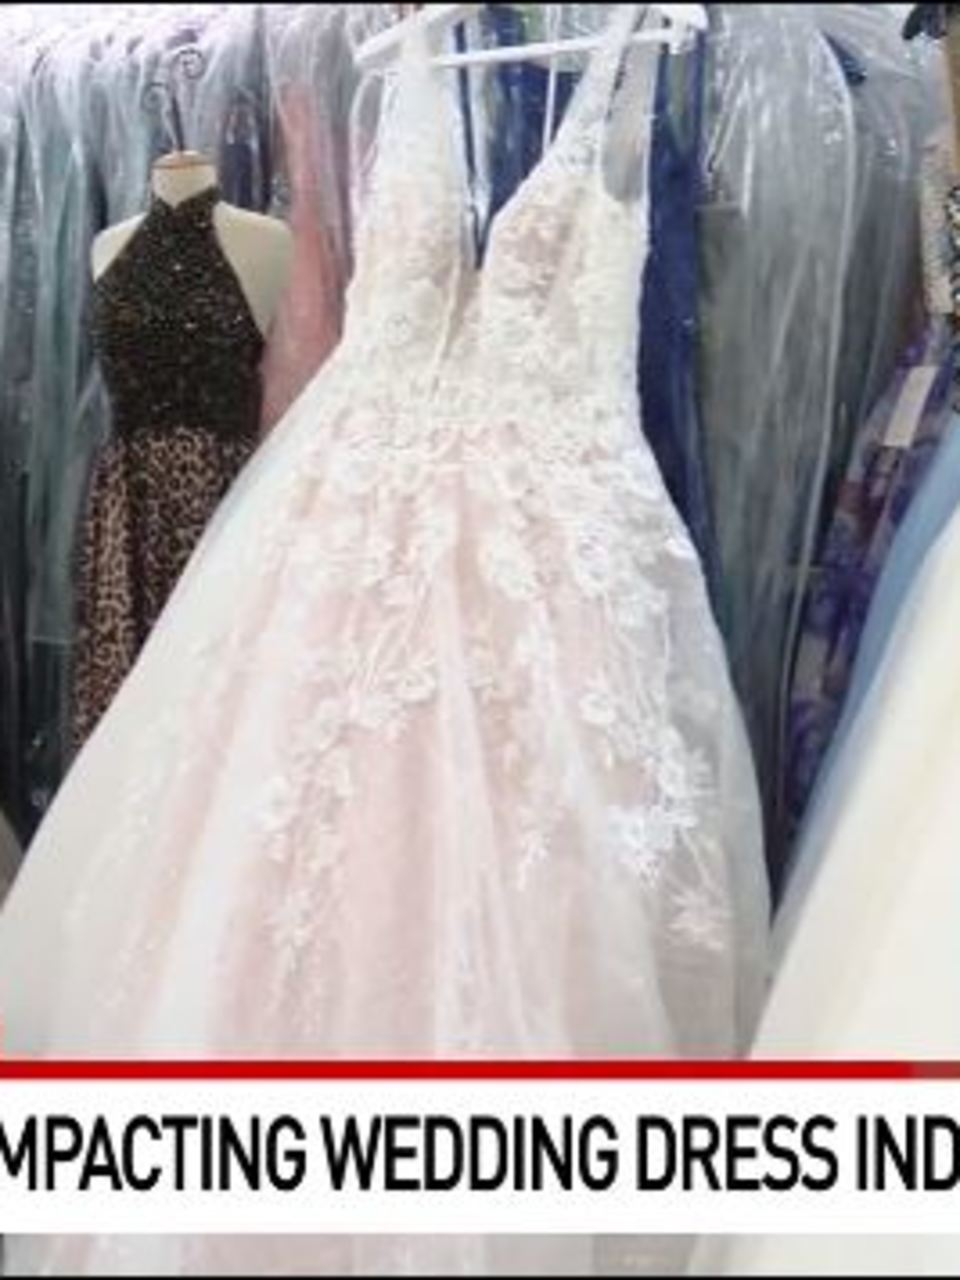 Coronavirus Causes Wedding Dress Dilemma Wpec